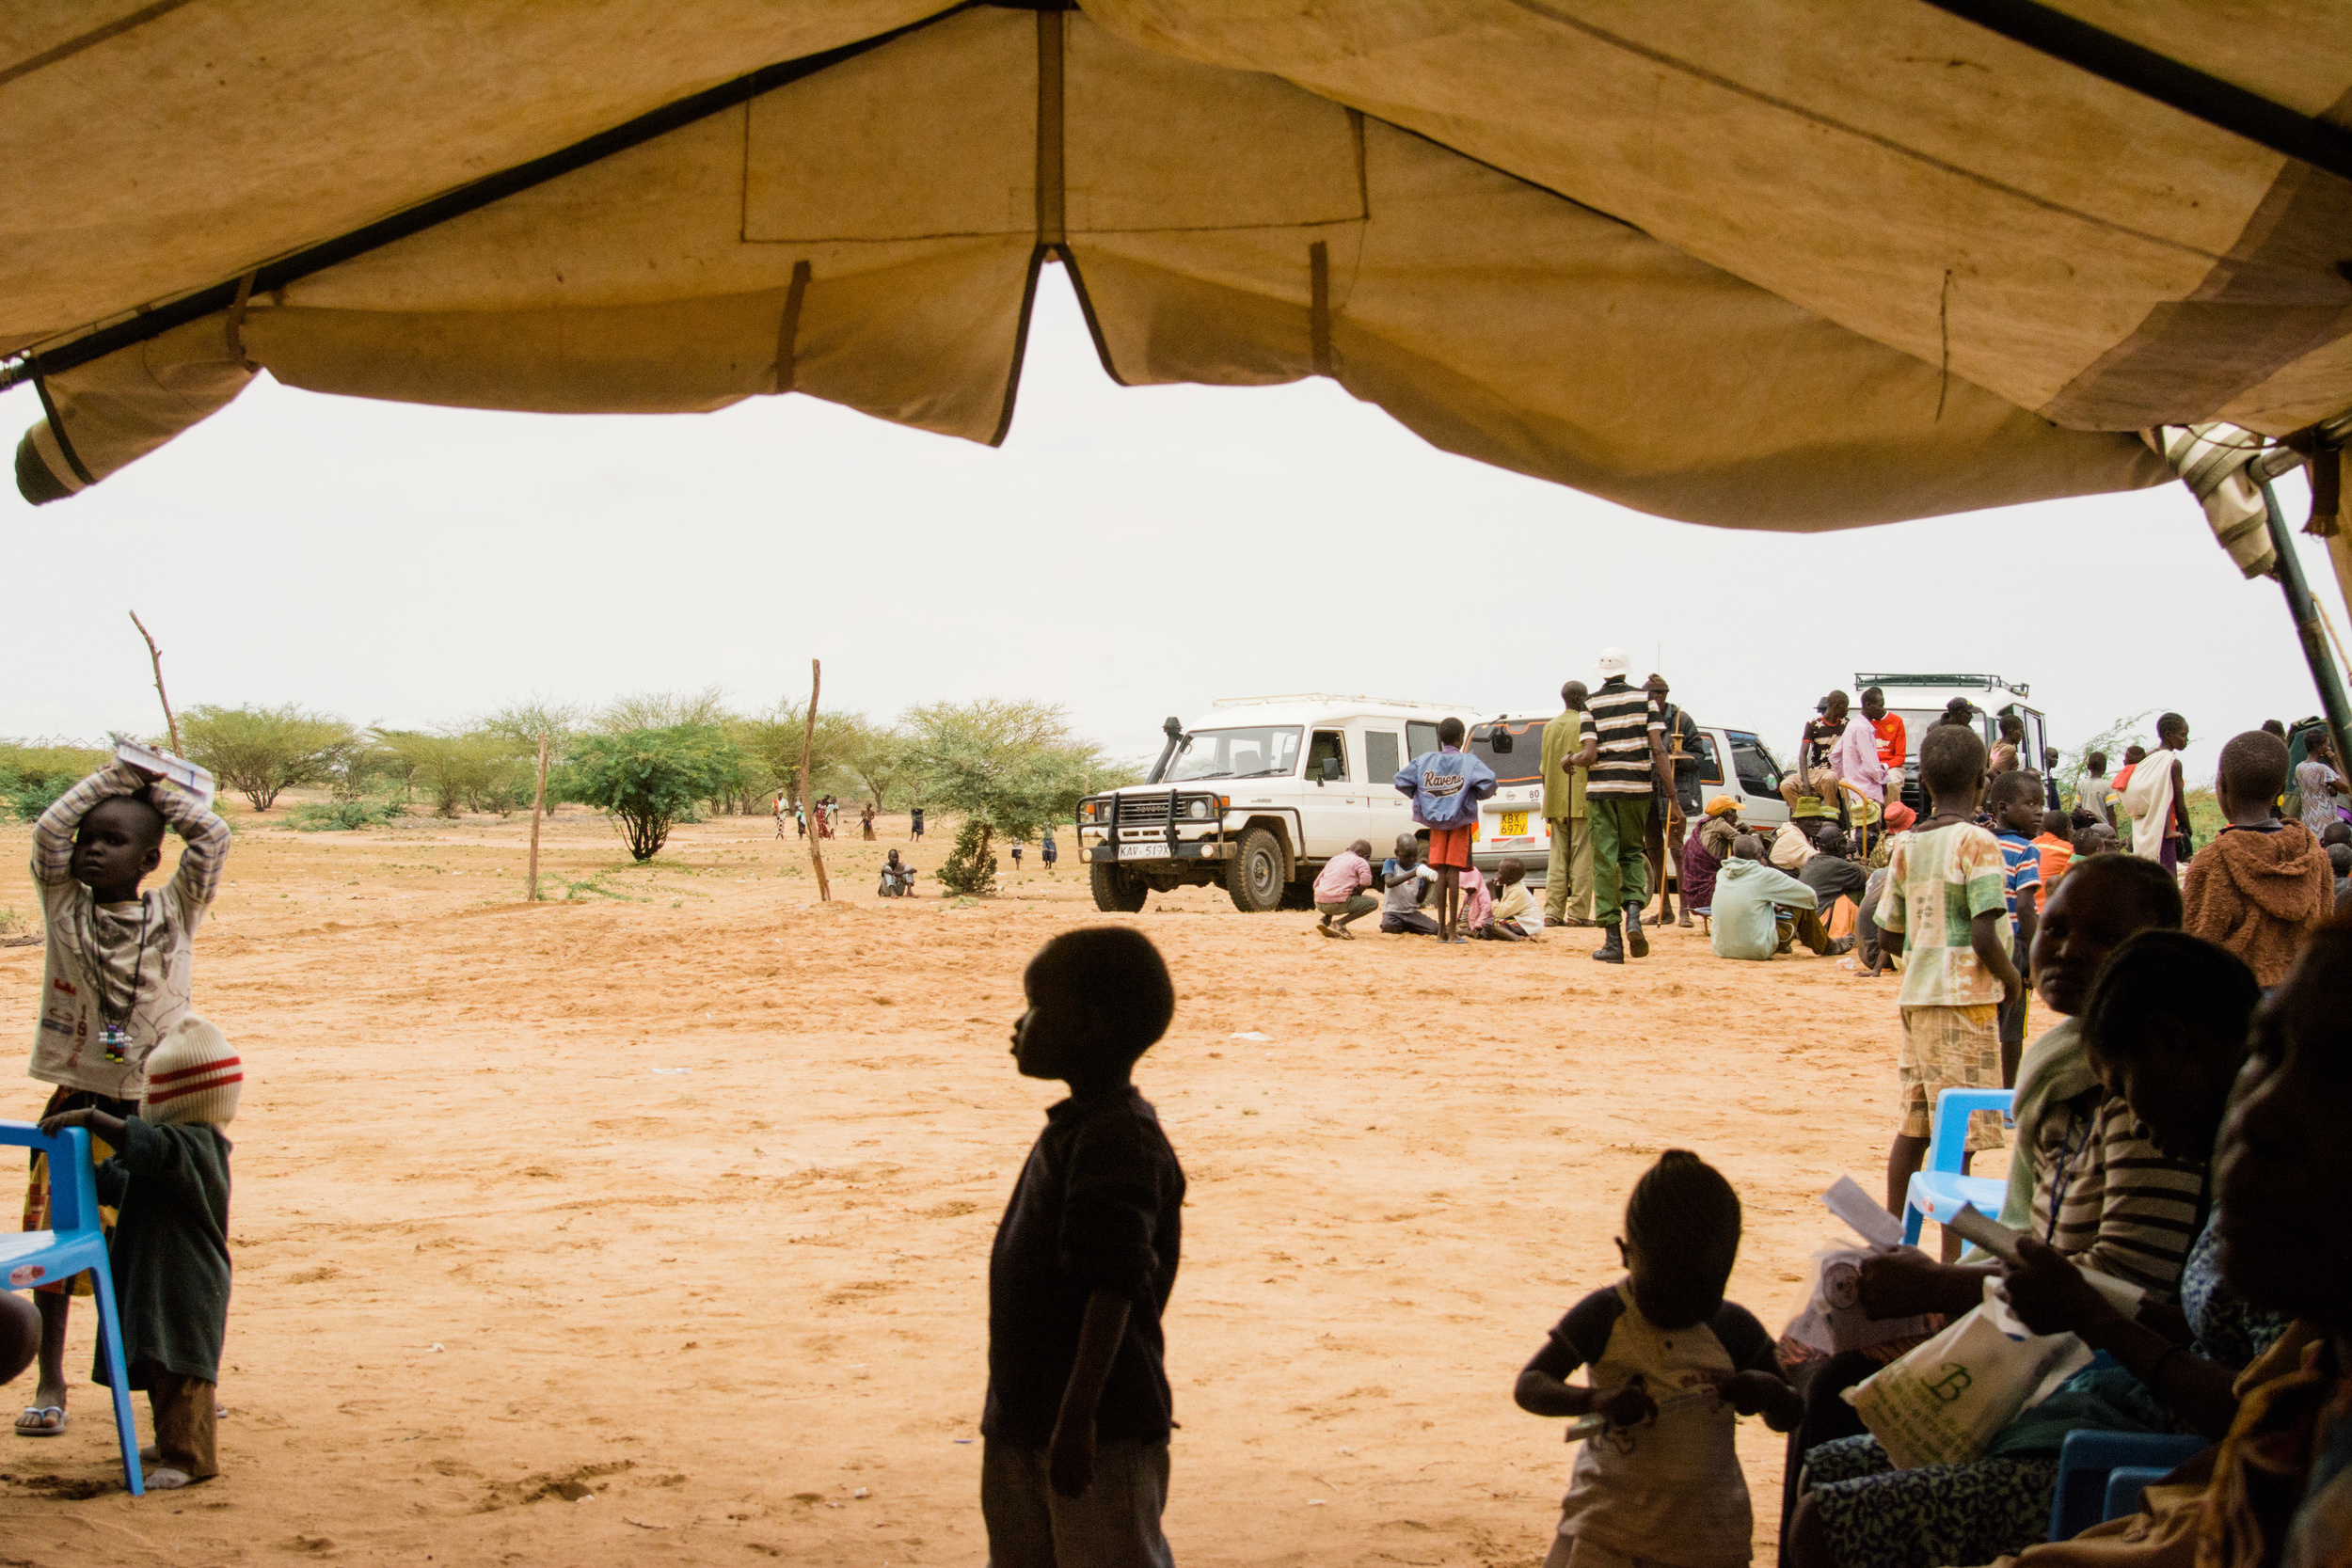 The view out of malaria testing tent